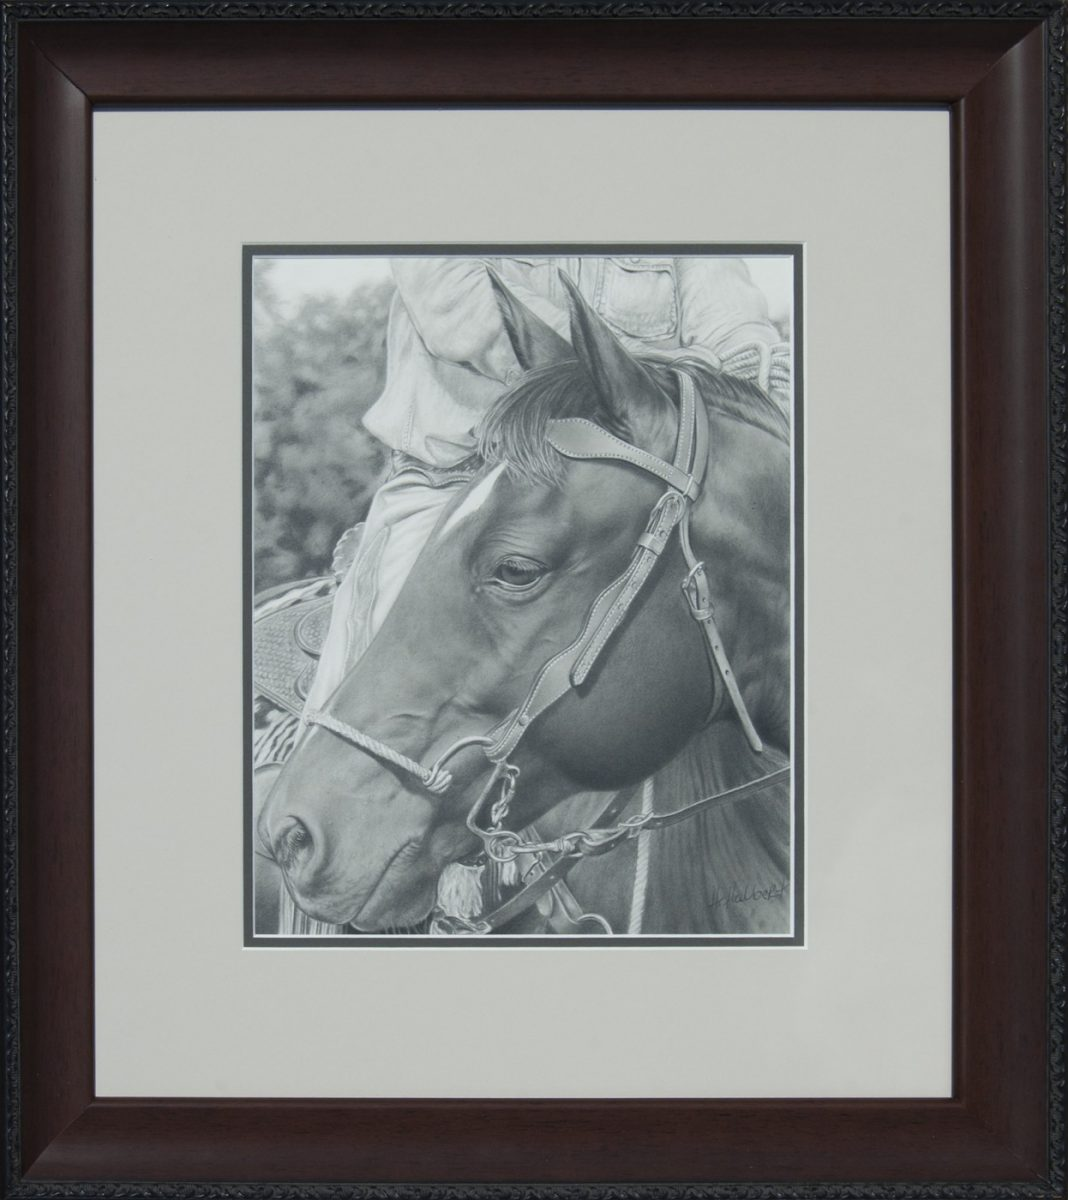 Relaxed graphite drawing by Howard Halbert